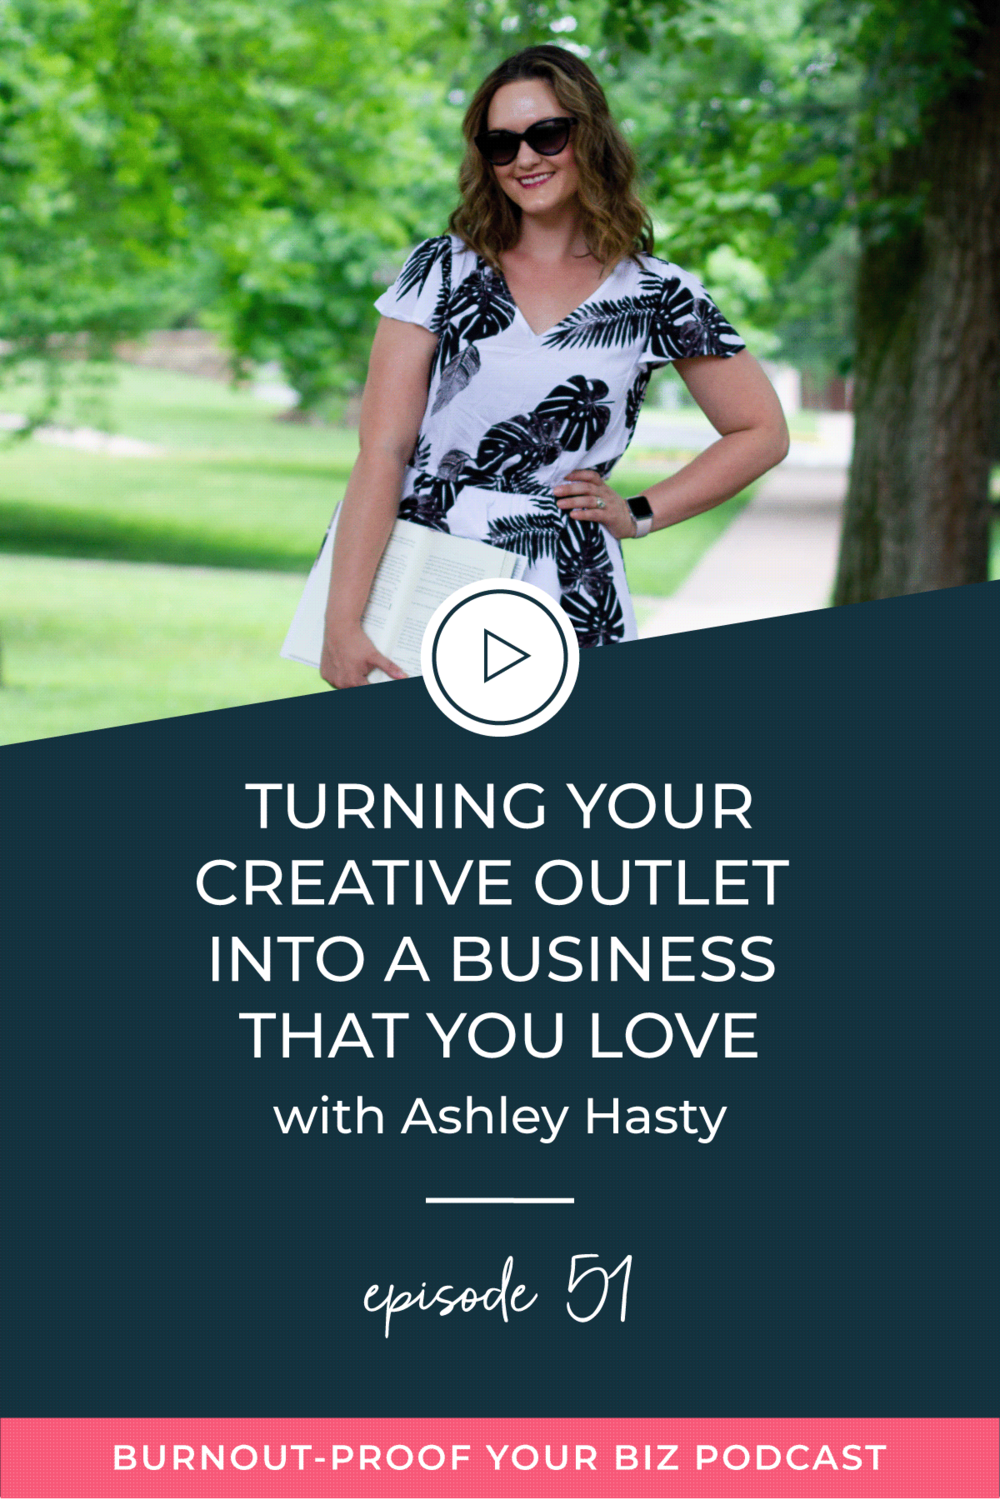 Burnout-Proof Your Biz Podcast with Chelsea B Foster   Episode 051 - Turning Your Creative Outlet Into a Business that You Love with Ashley Hasty of Hasty Book List   Learn how to run your biz and live your dream life on your own terms without the fear of burnout.      FINDING YOUR CREATIVE OUTLET   HOBBY TO BUSINESS   HOBBY OR BUSINESS   CREATING A BUSINESS YOU LOVE   FINDING JOY   SPARK JOY   WHAT TO DO WHEN YOU'RE BURNING OUT   LETTING GO OF SOMETHING YOU LOVE BUT ISN'T WORKING   GOING FROM PART-TIME BLOGGER TO FULL-TIME BLOGGER   BLOGGER ORGANIZATION   ORGANIZATION FOR BLOGGERS   HOW TO ORGANIZE YOUR CONTENT CALENDAR   HOW TO TURN YOUR HOBBY OF READING INTO A BUSINESS   BUSINESS COACH   WORKFLOW & PRODUCTIVITY SPECIALIST   SYSTEMS & ORGANIZATION SPECIALIST FOR COACHES   ADD MORE FREEDOM TO YOUR LIFE   BUSINESS COACH FOR BLOGGERS